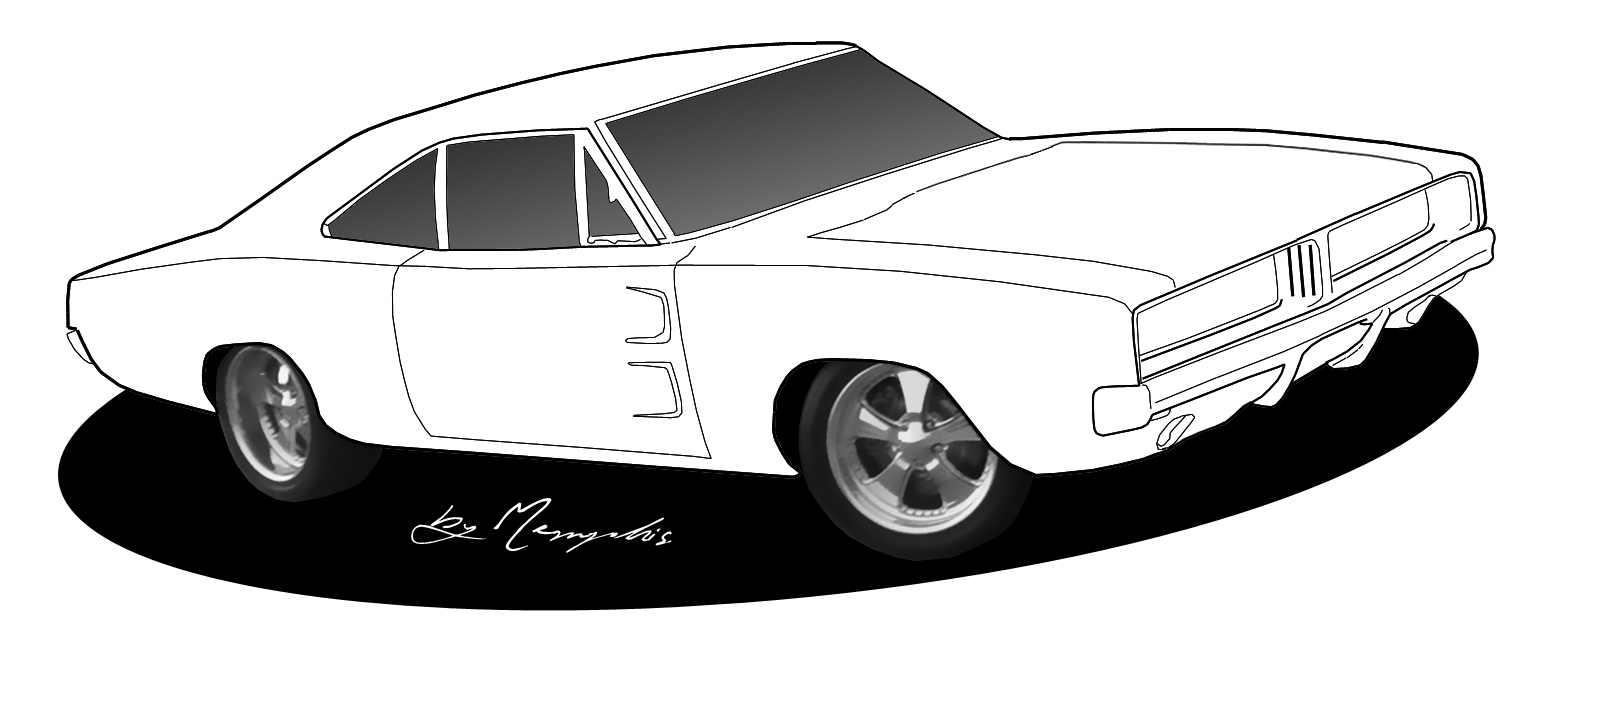 car coloring pages printable for free muscle car coloring pages to download and print for free coloring pages car printable for free